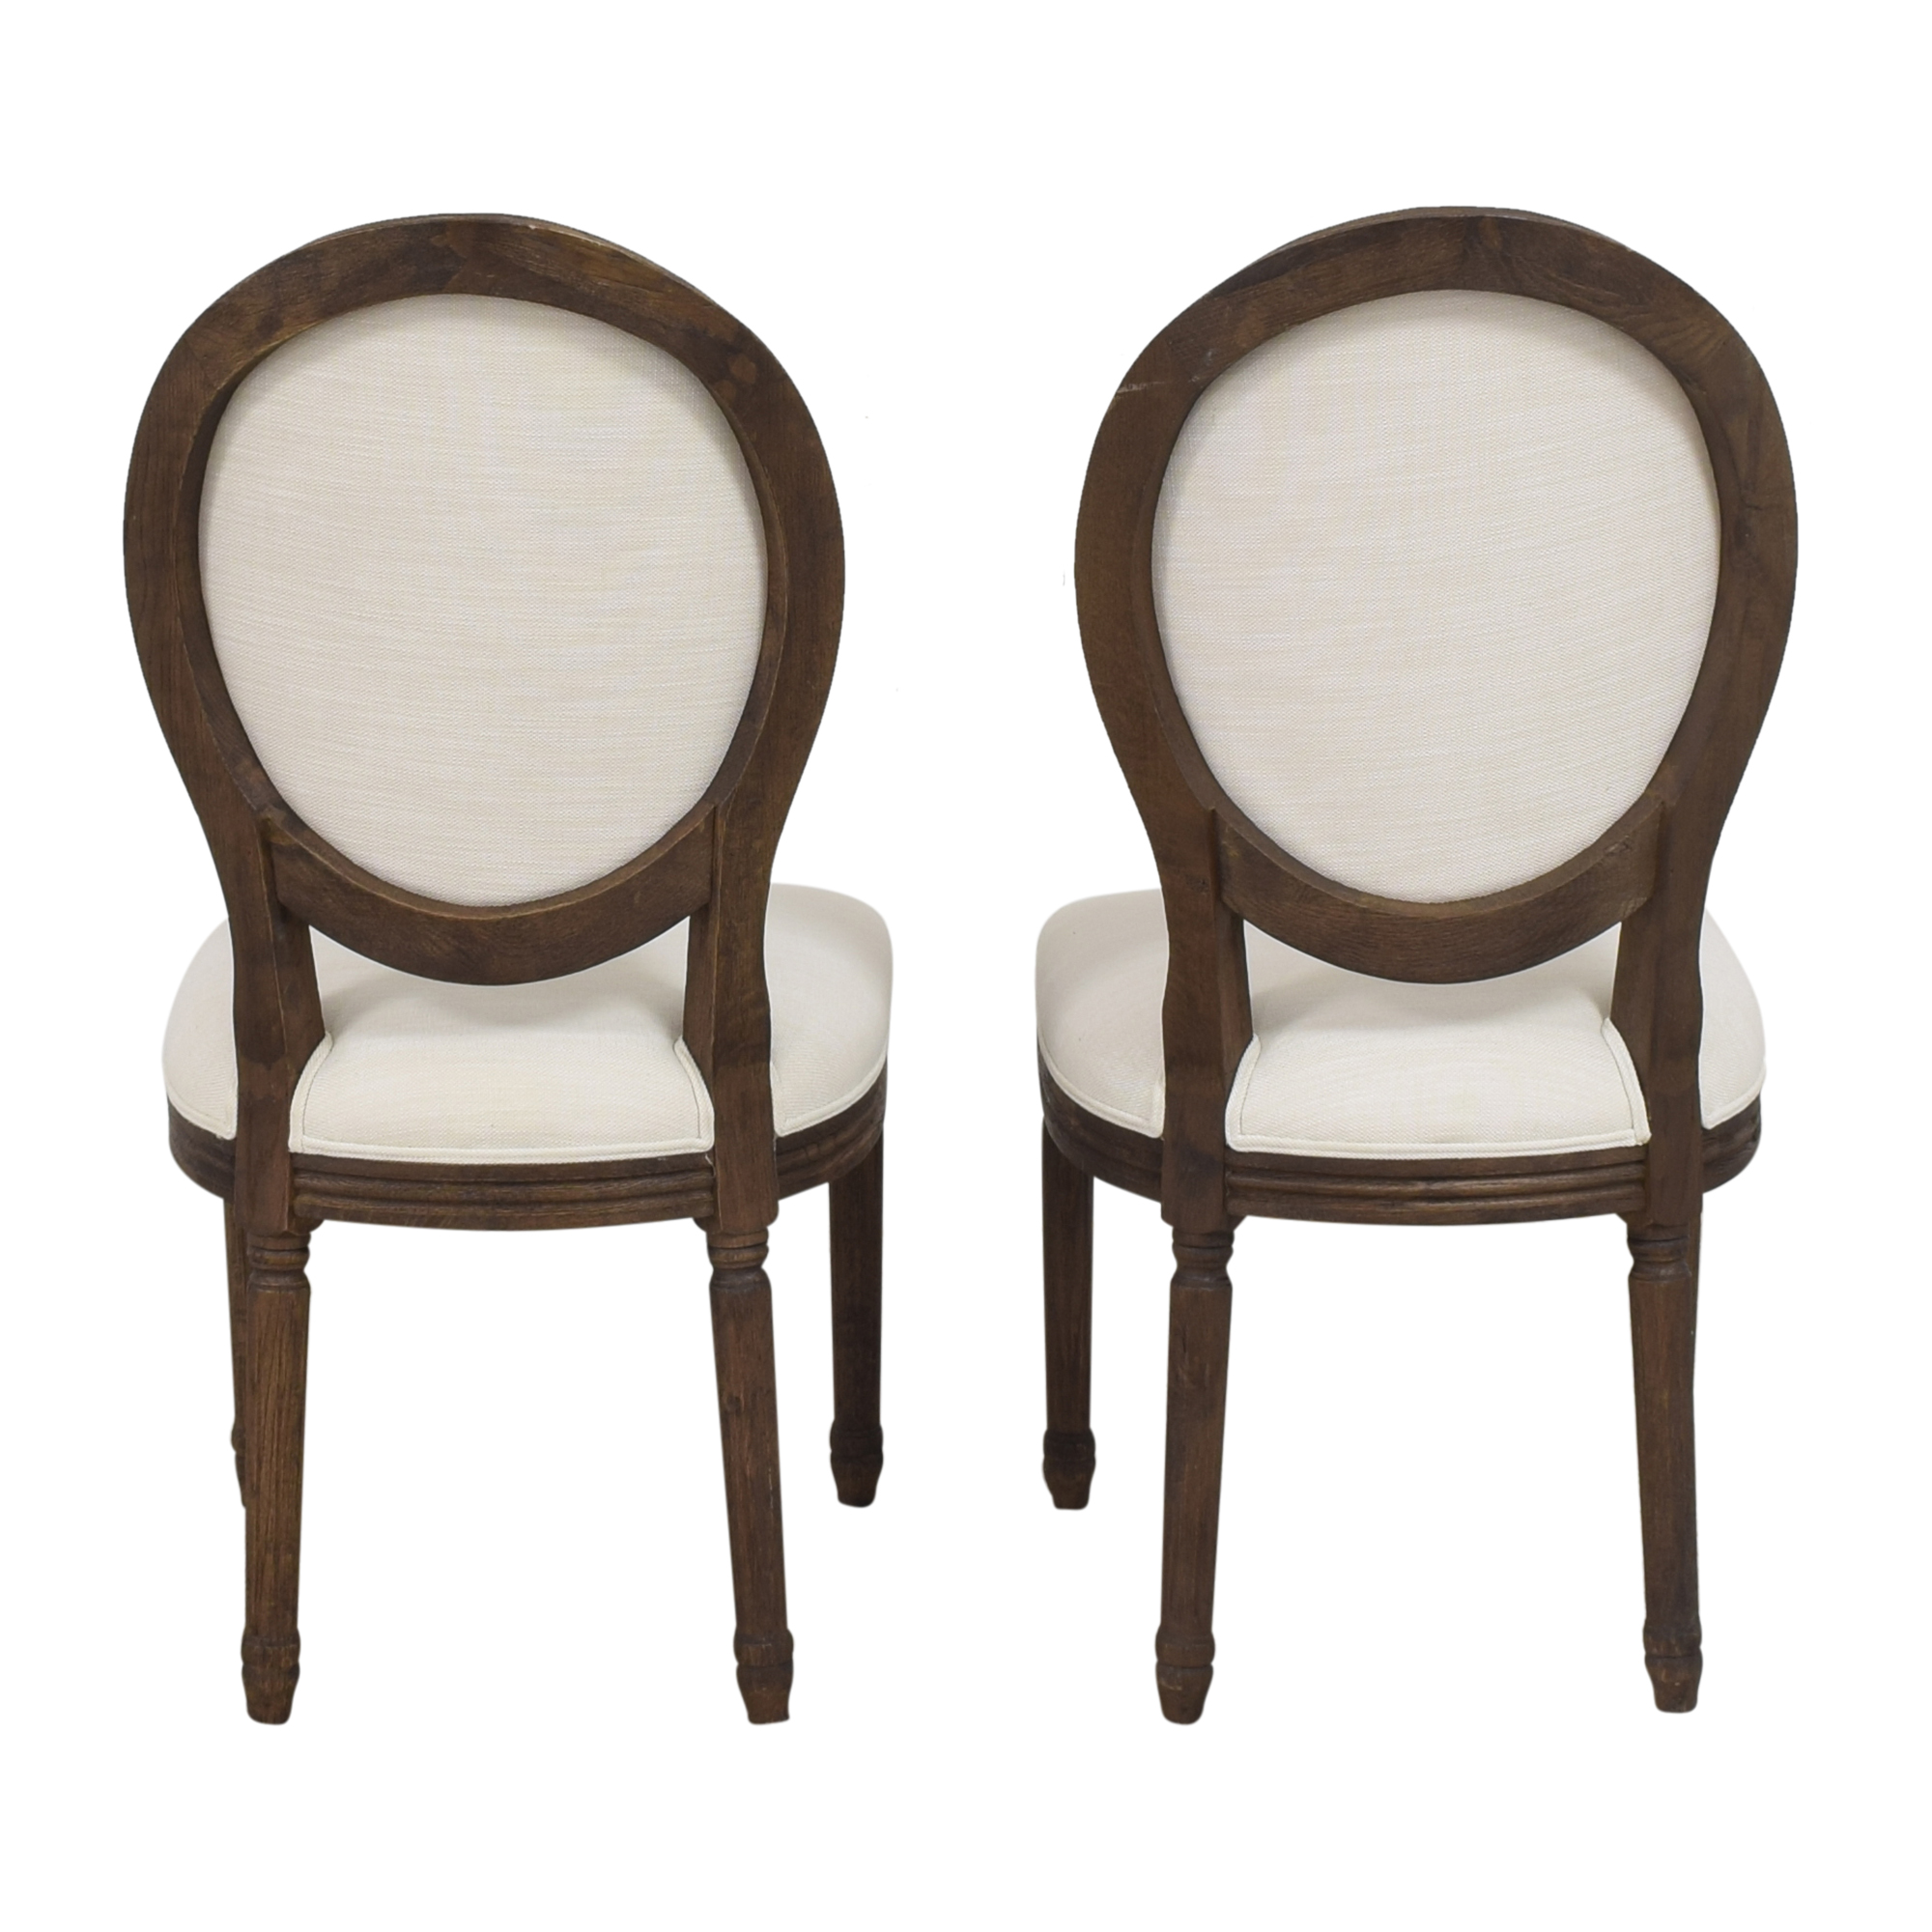 Restoration Hardware Restoration Hardware Vintage French Round Side Dining Chairs used